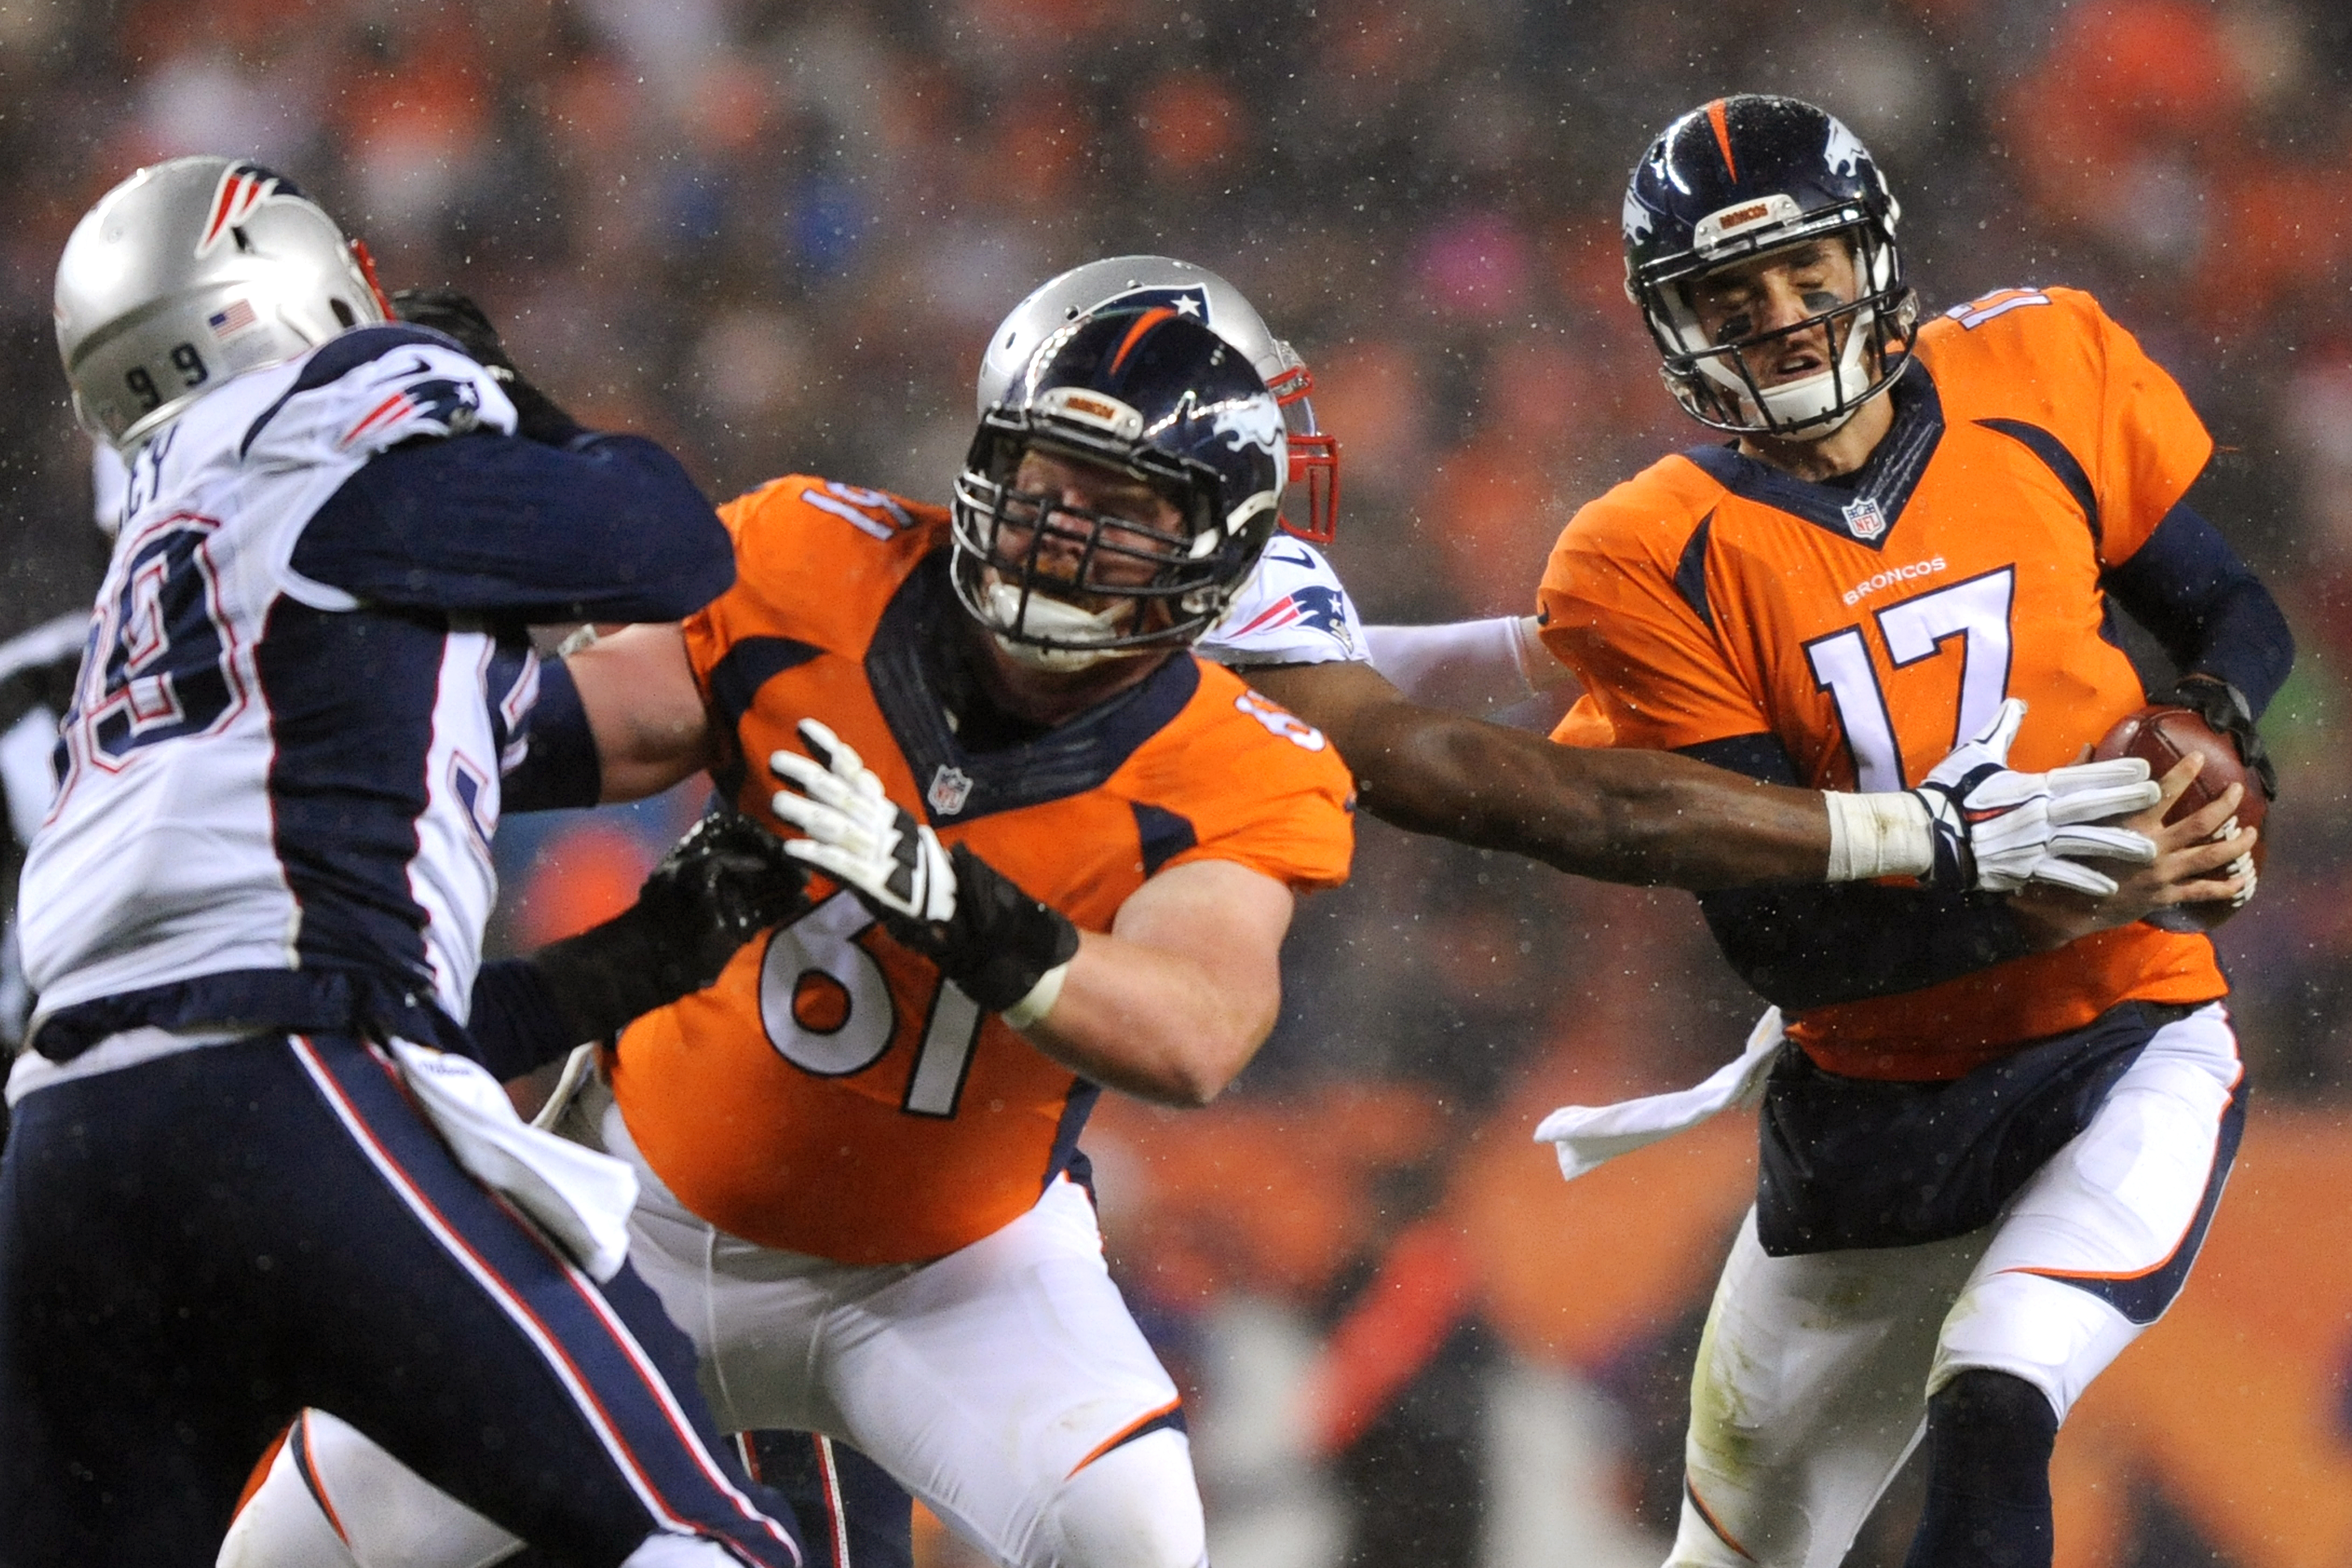 Quarterback Brock Osweiler #17 of the Denver Broncos scrambles while center Matt Paradis #61 of the Denver Broncos blocks against defensive tackle Dominique Easley #99 of the New England Patriots in the first quarter at Sports Authority Field at Mile High on November 29, 2015 in Denver, Colorado. (Photo by Dustin Bradford/Getty Images)